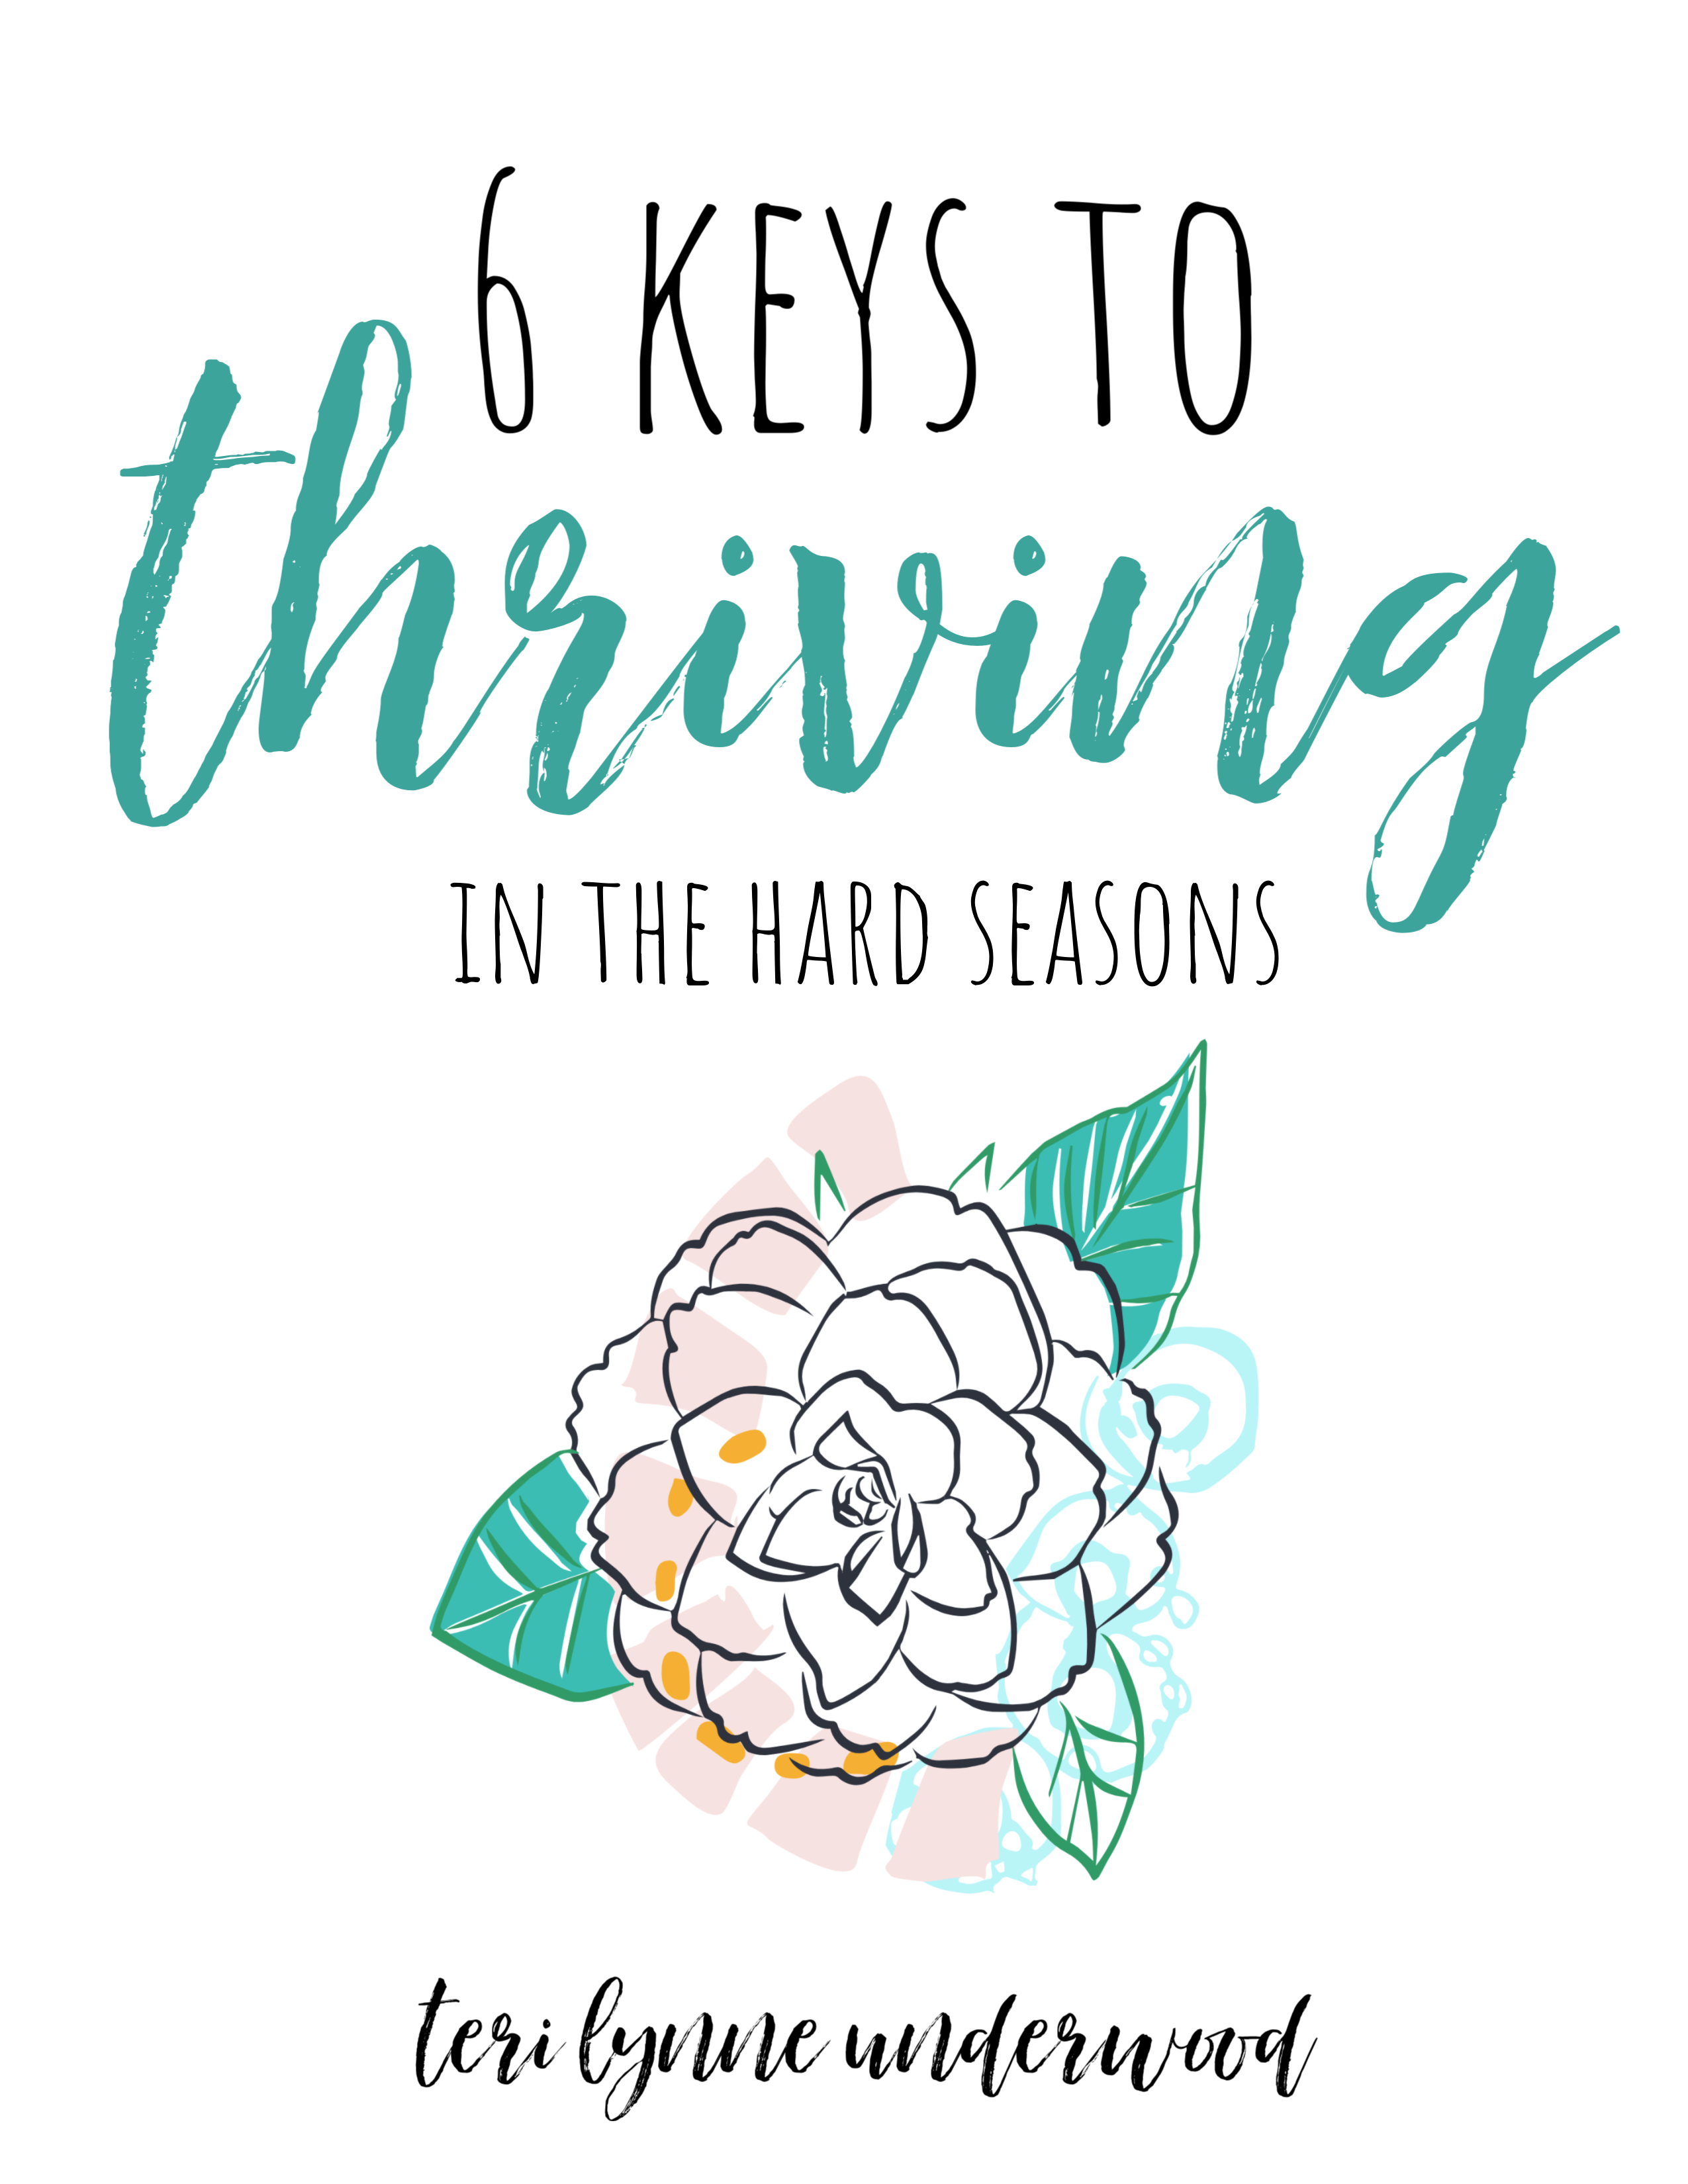 6 Keys to Thriving in the Hard Seasons (from Psalm 42) When the hard days come, we can truly thrive as we trust His faithfulness and choose to give Him the praise He is due.